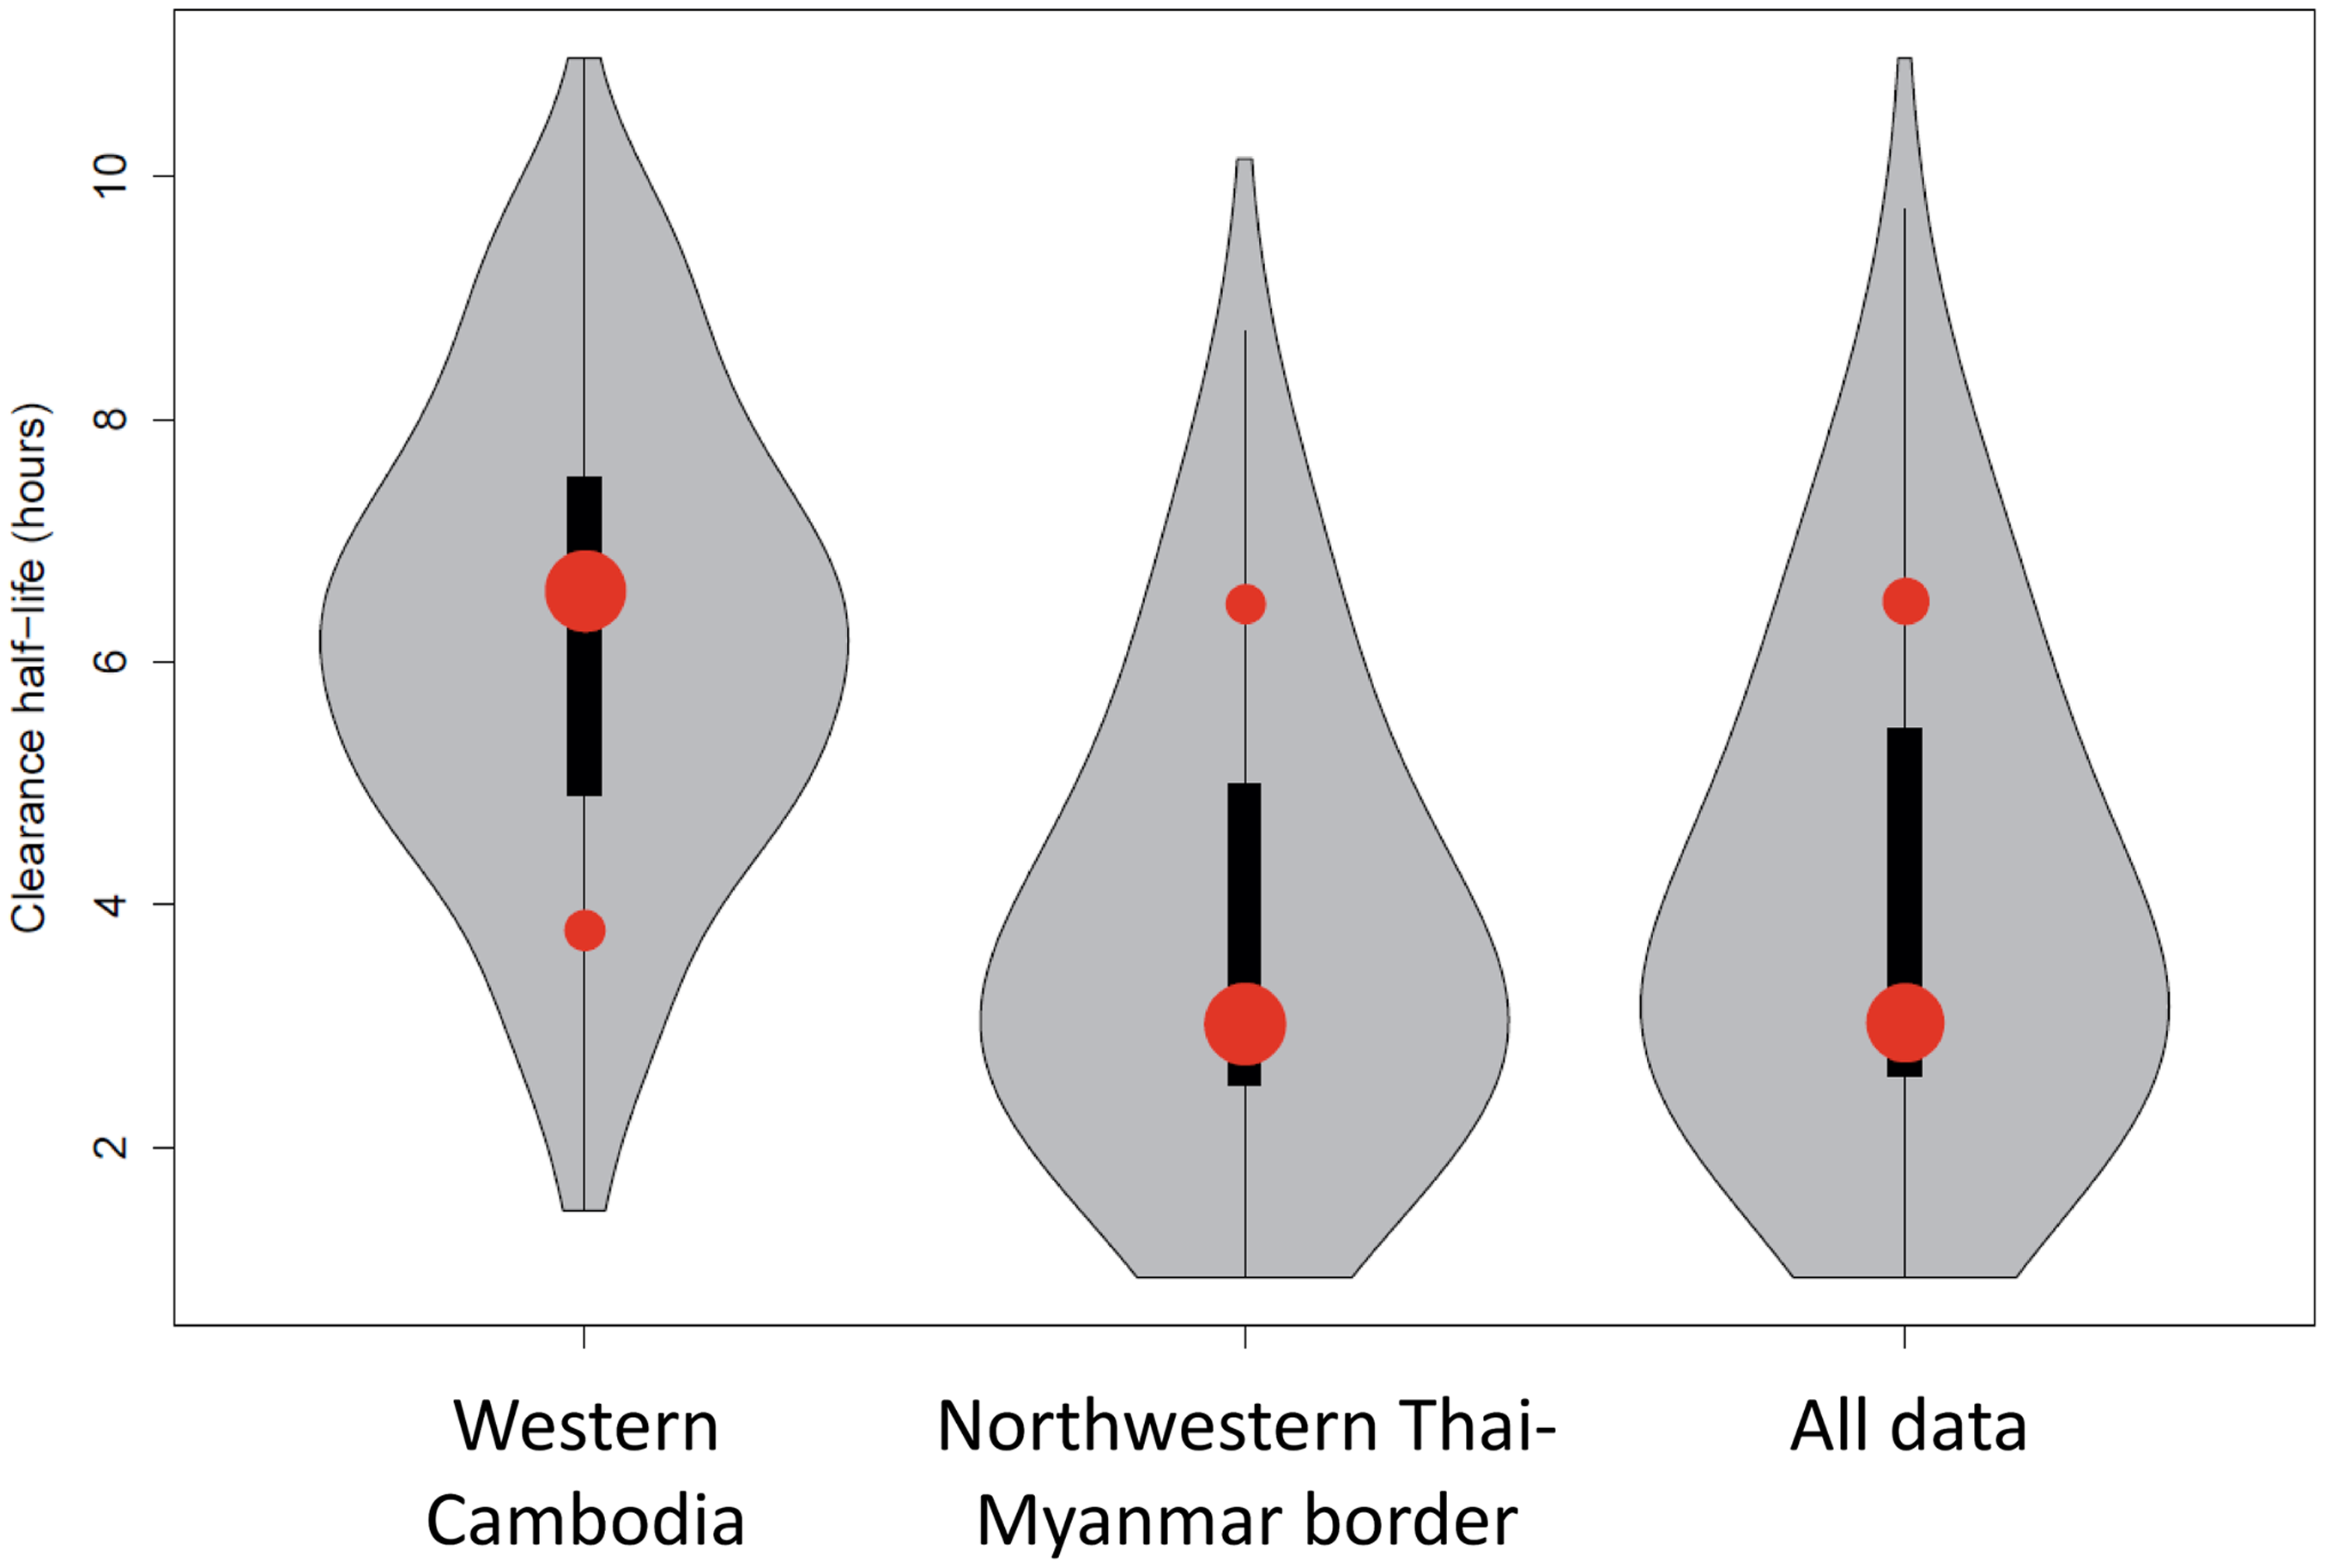 Plot of the model fits (red dots) to observed data (grey violin plots, with a black bar representing the interquartile range) aggregated by country.